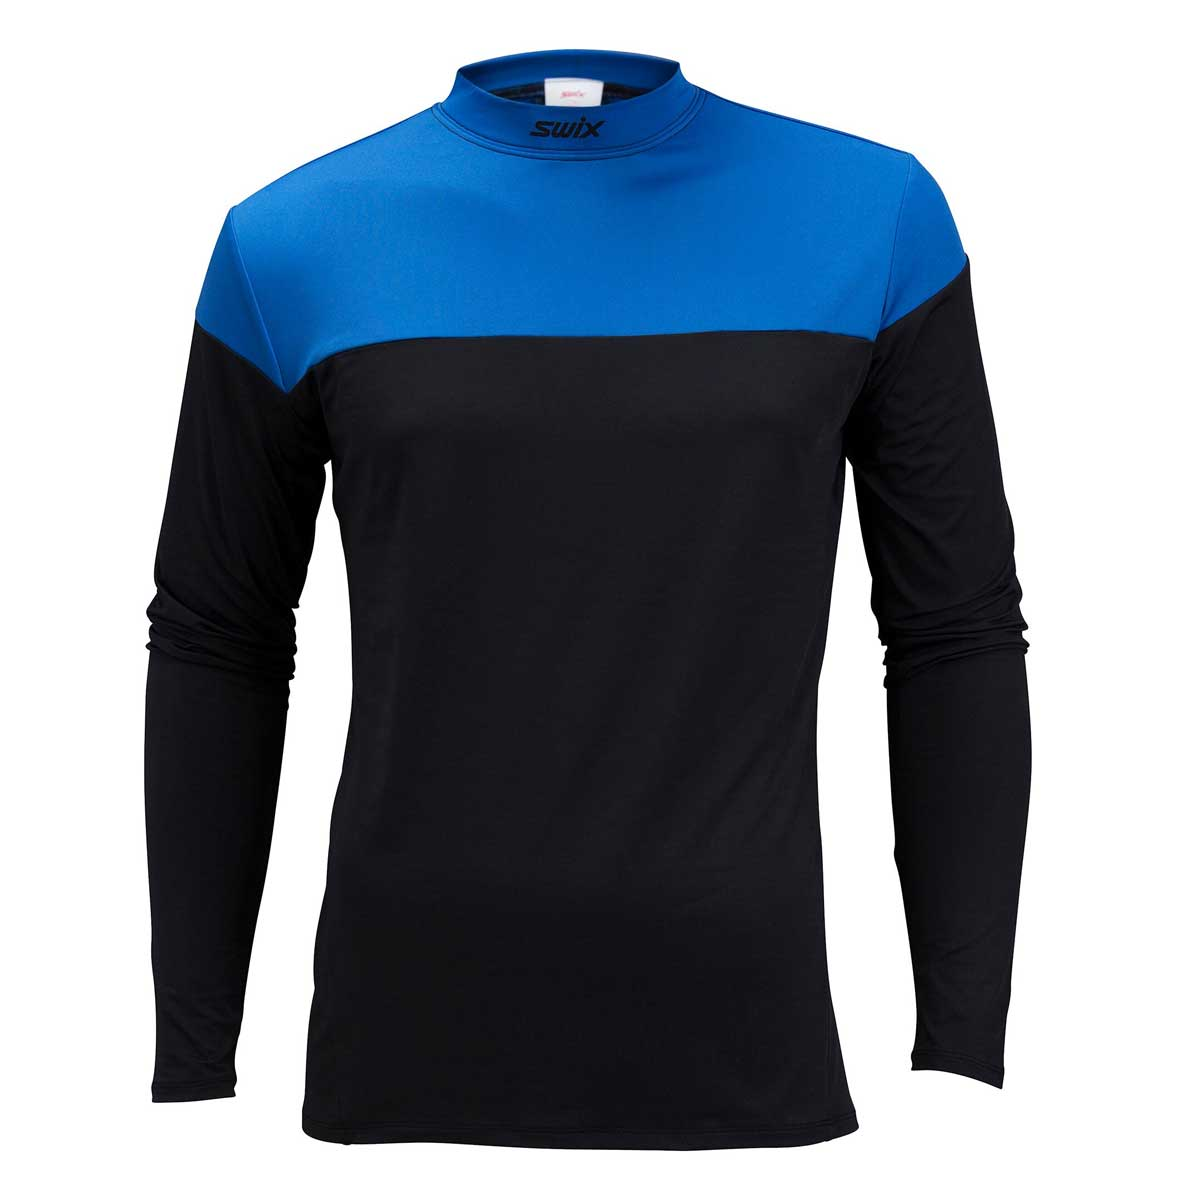 Swix Men's Focus NTS Training Top in Black